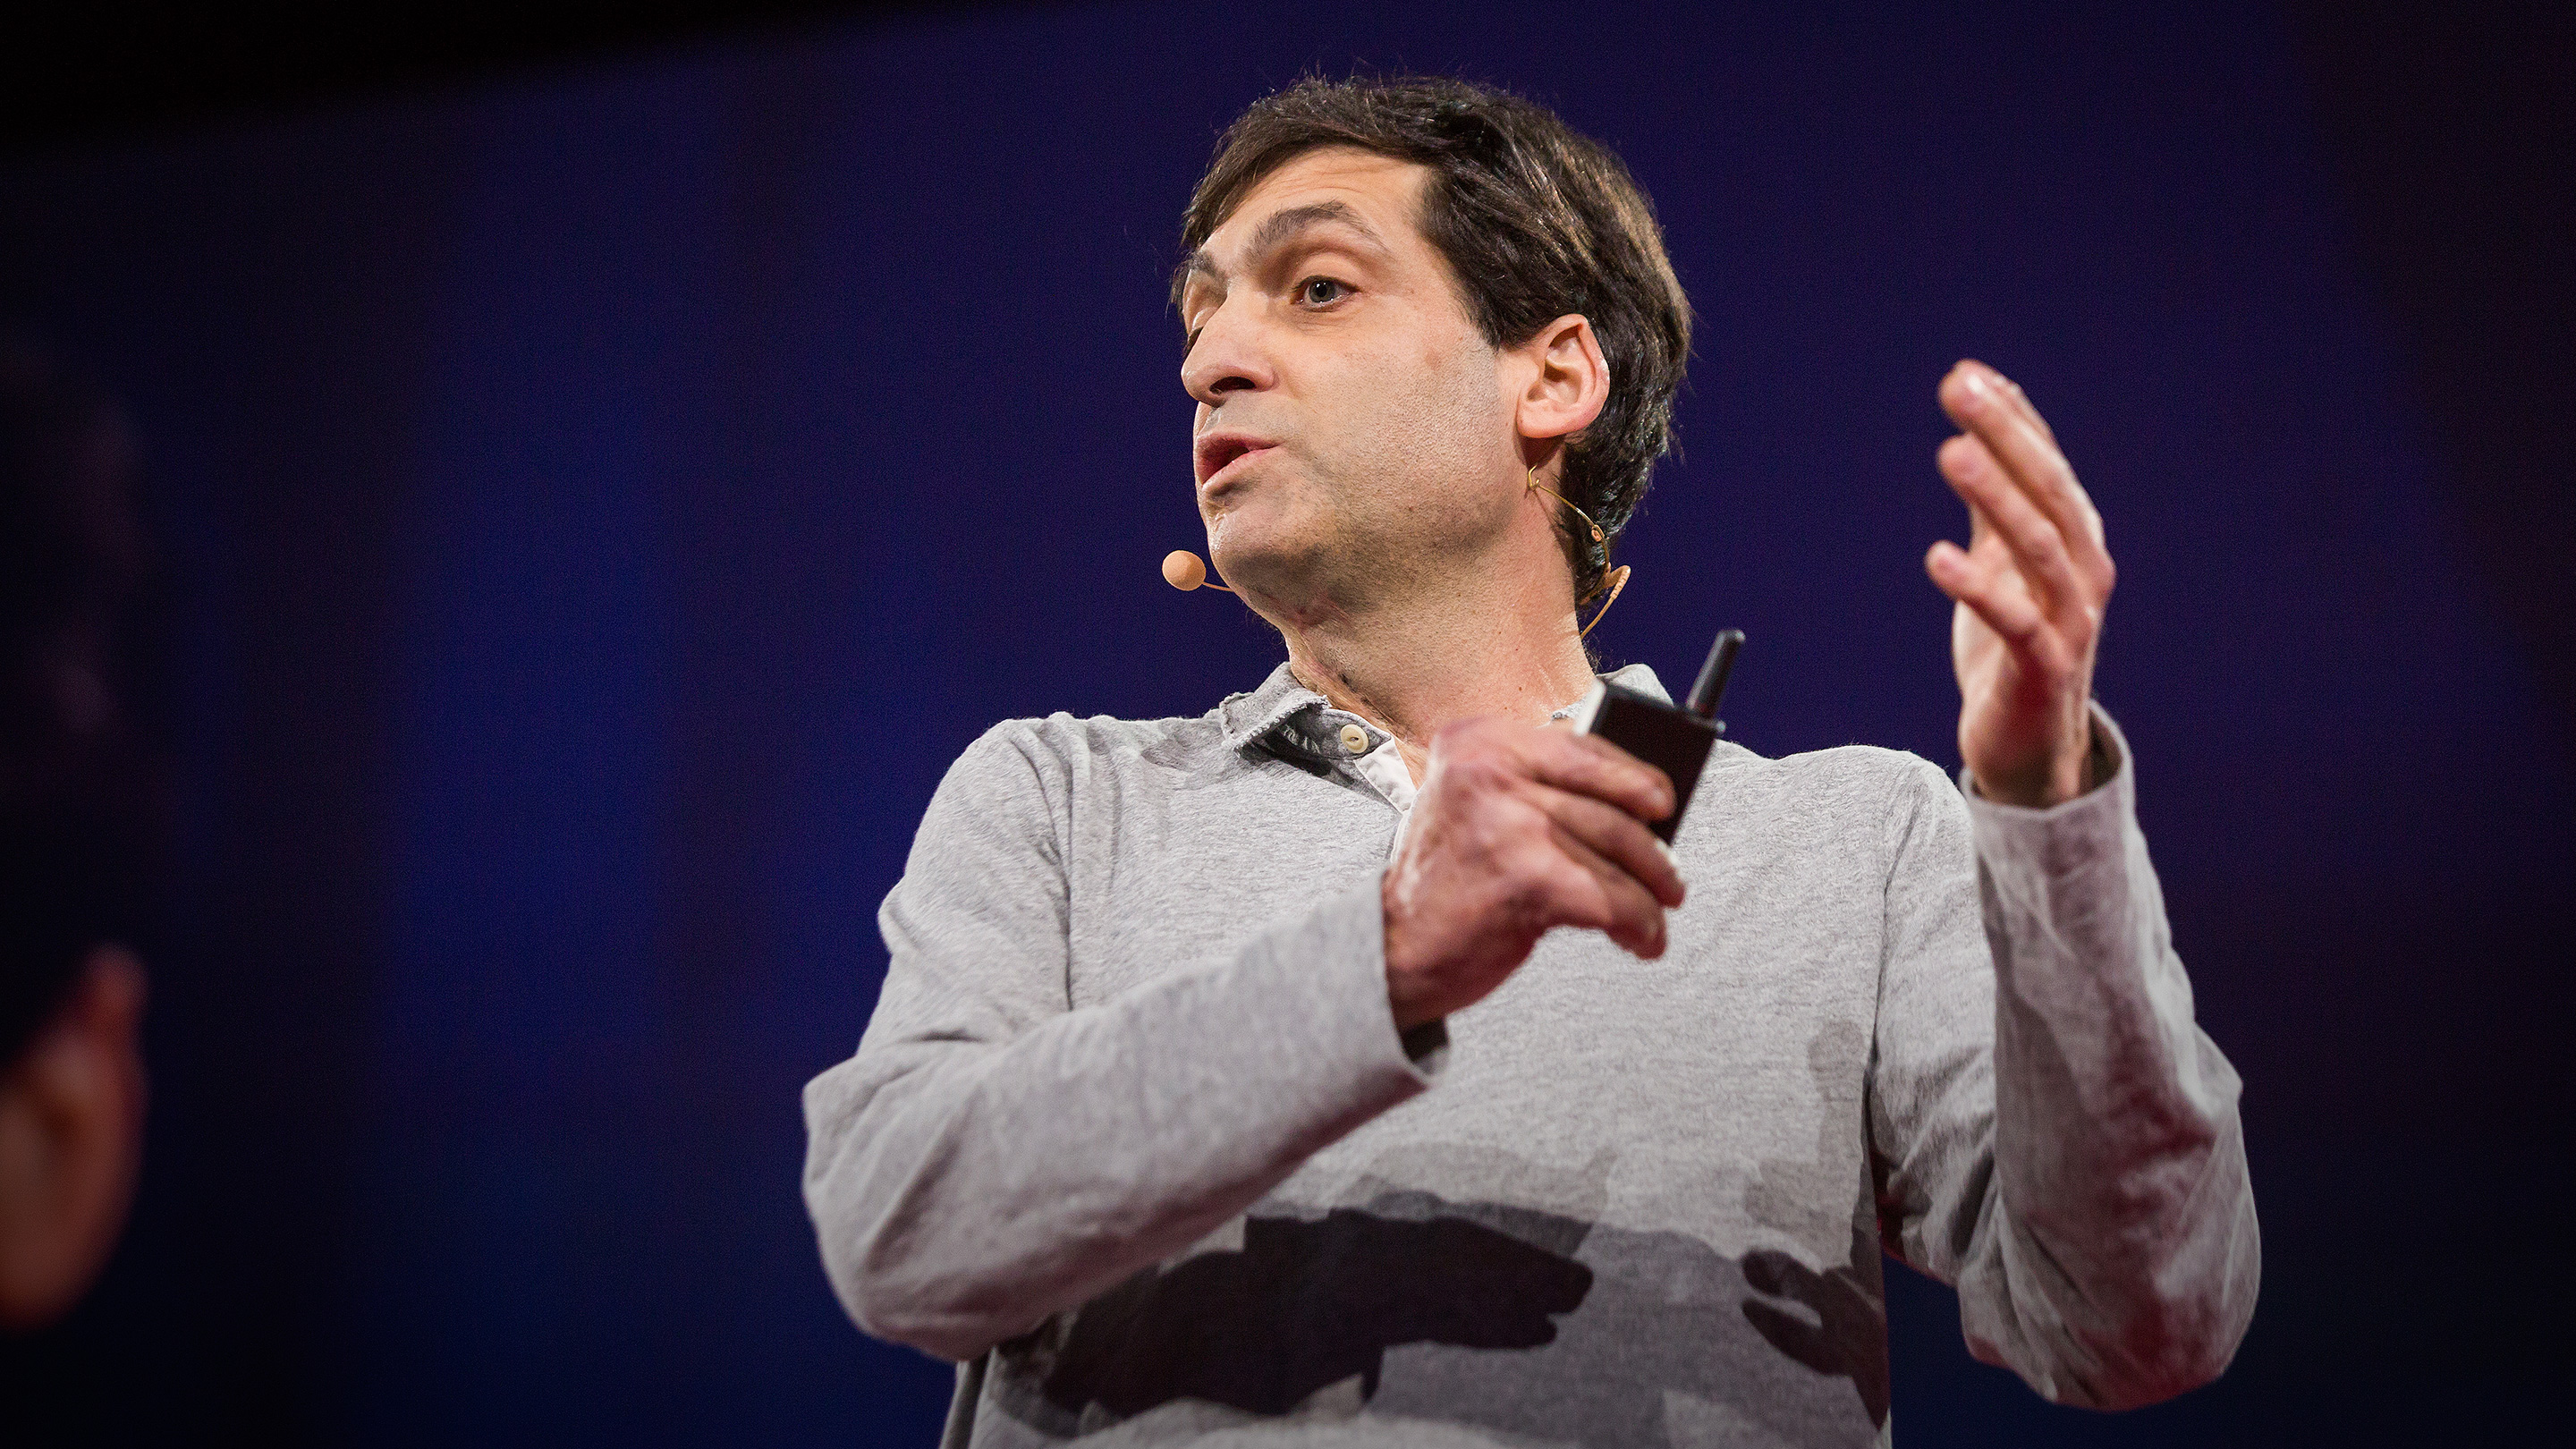 Dan Ariely: Dan Ariely: How equal do we want the world to be? You'd be surprised thumbnail